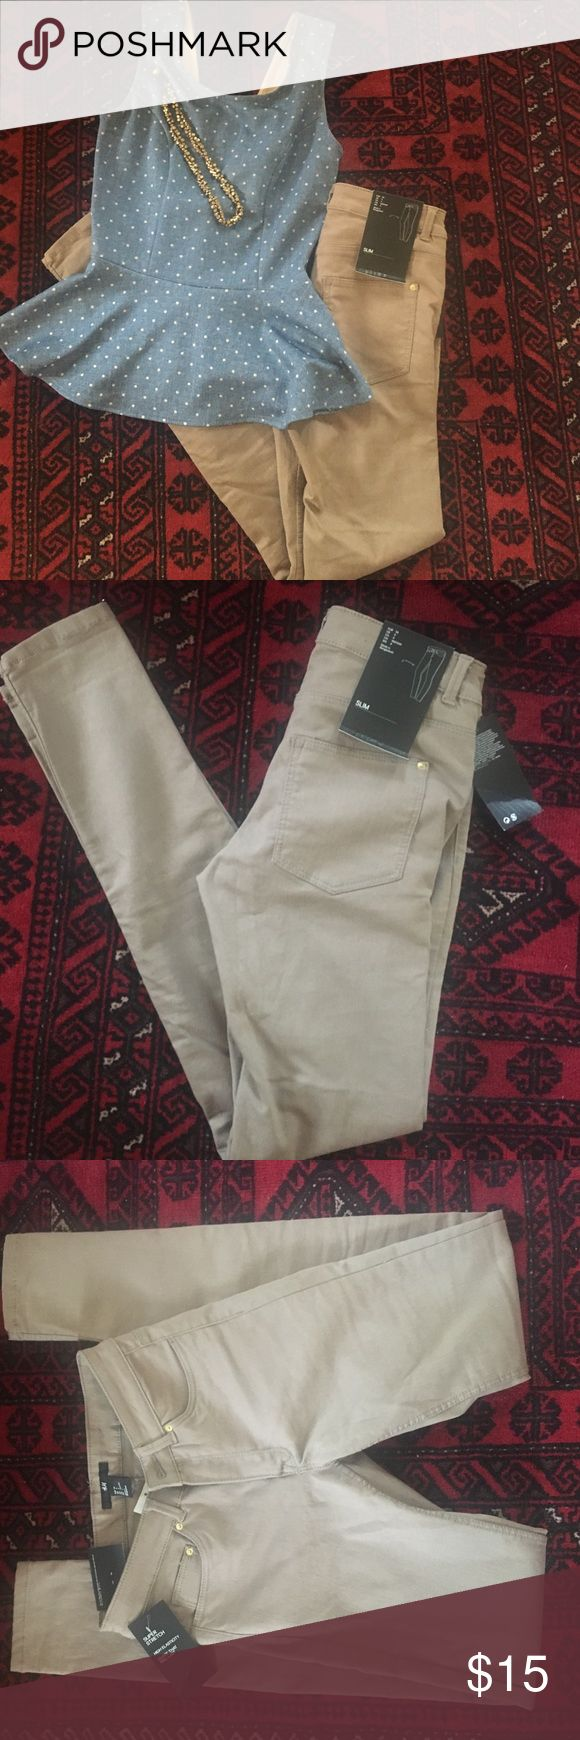 Slim fit Khakis Pants Super slim fit Khaki pants, NWT! Have lots of stretch! Very sexy! H&M Pants Skinny